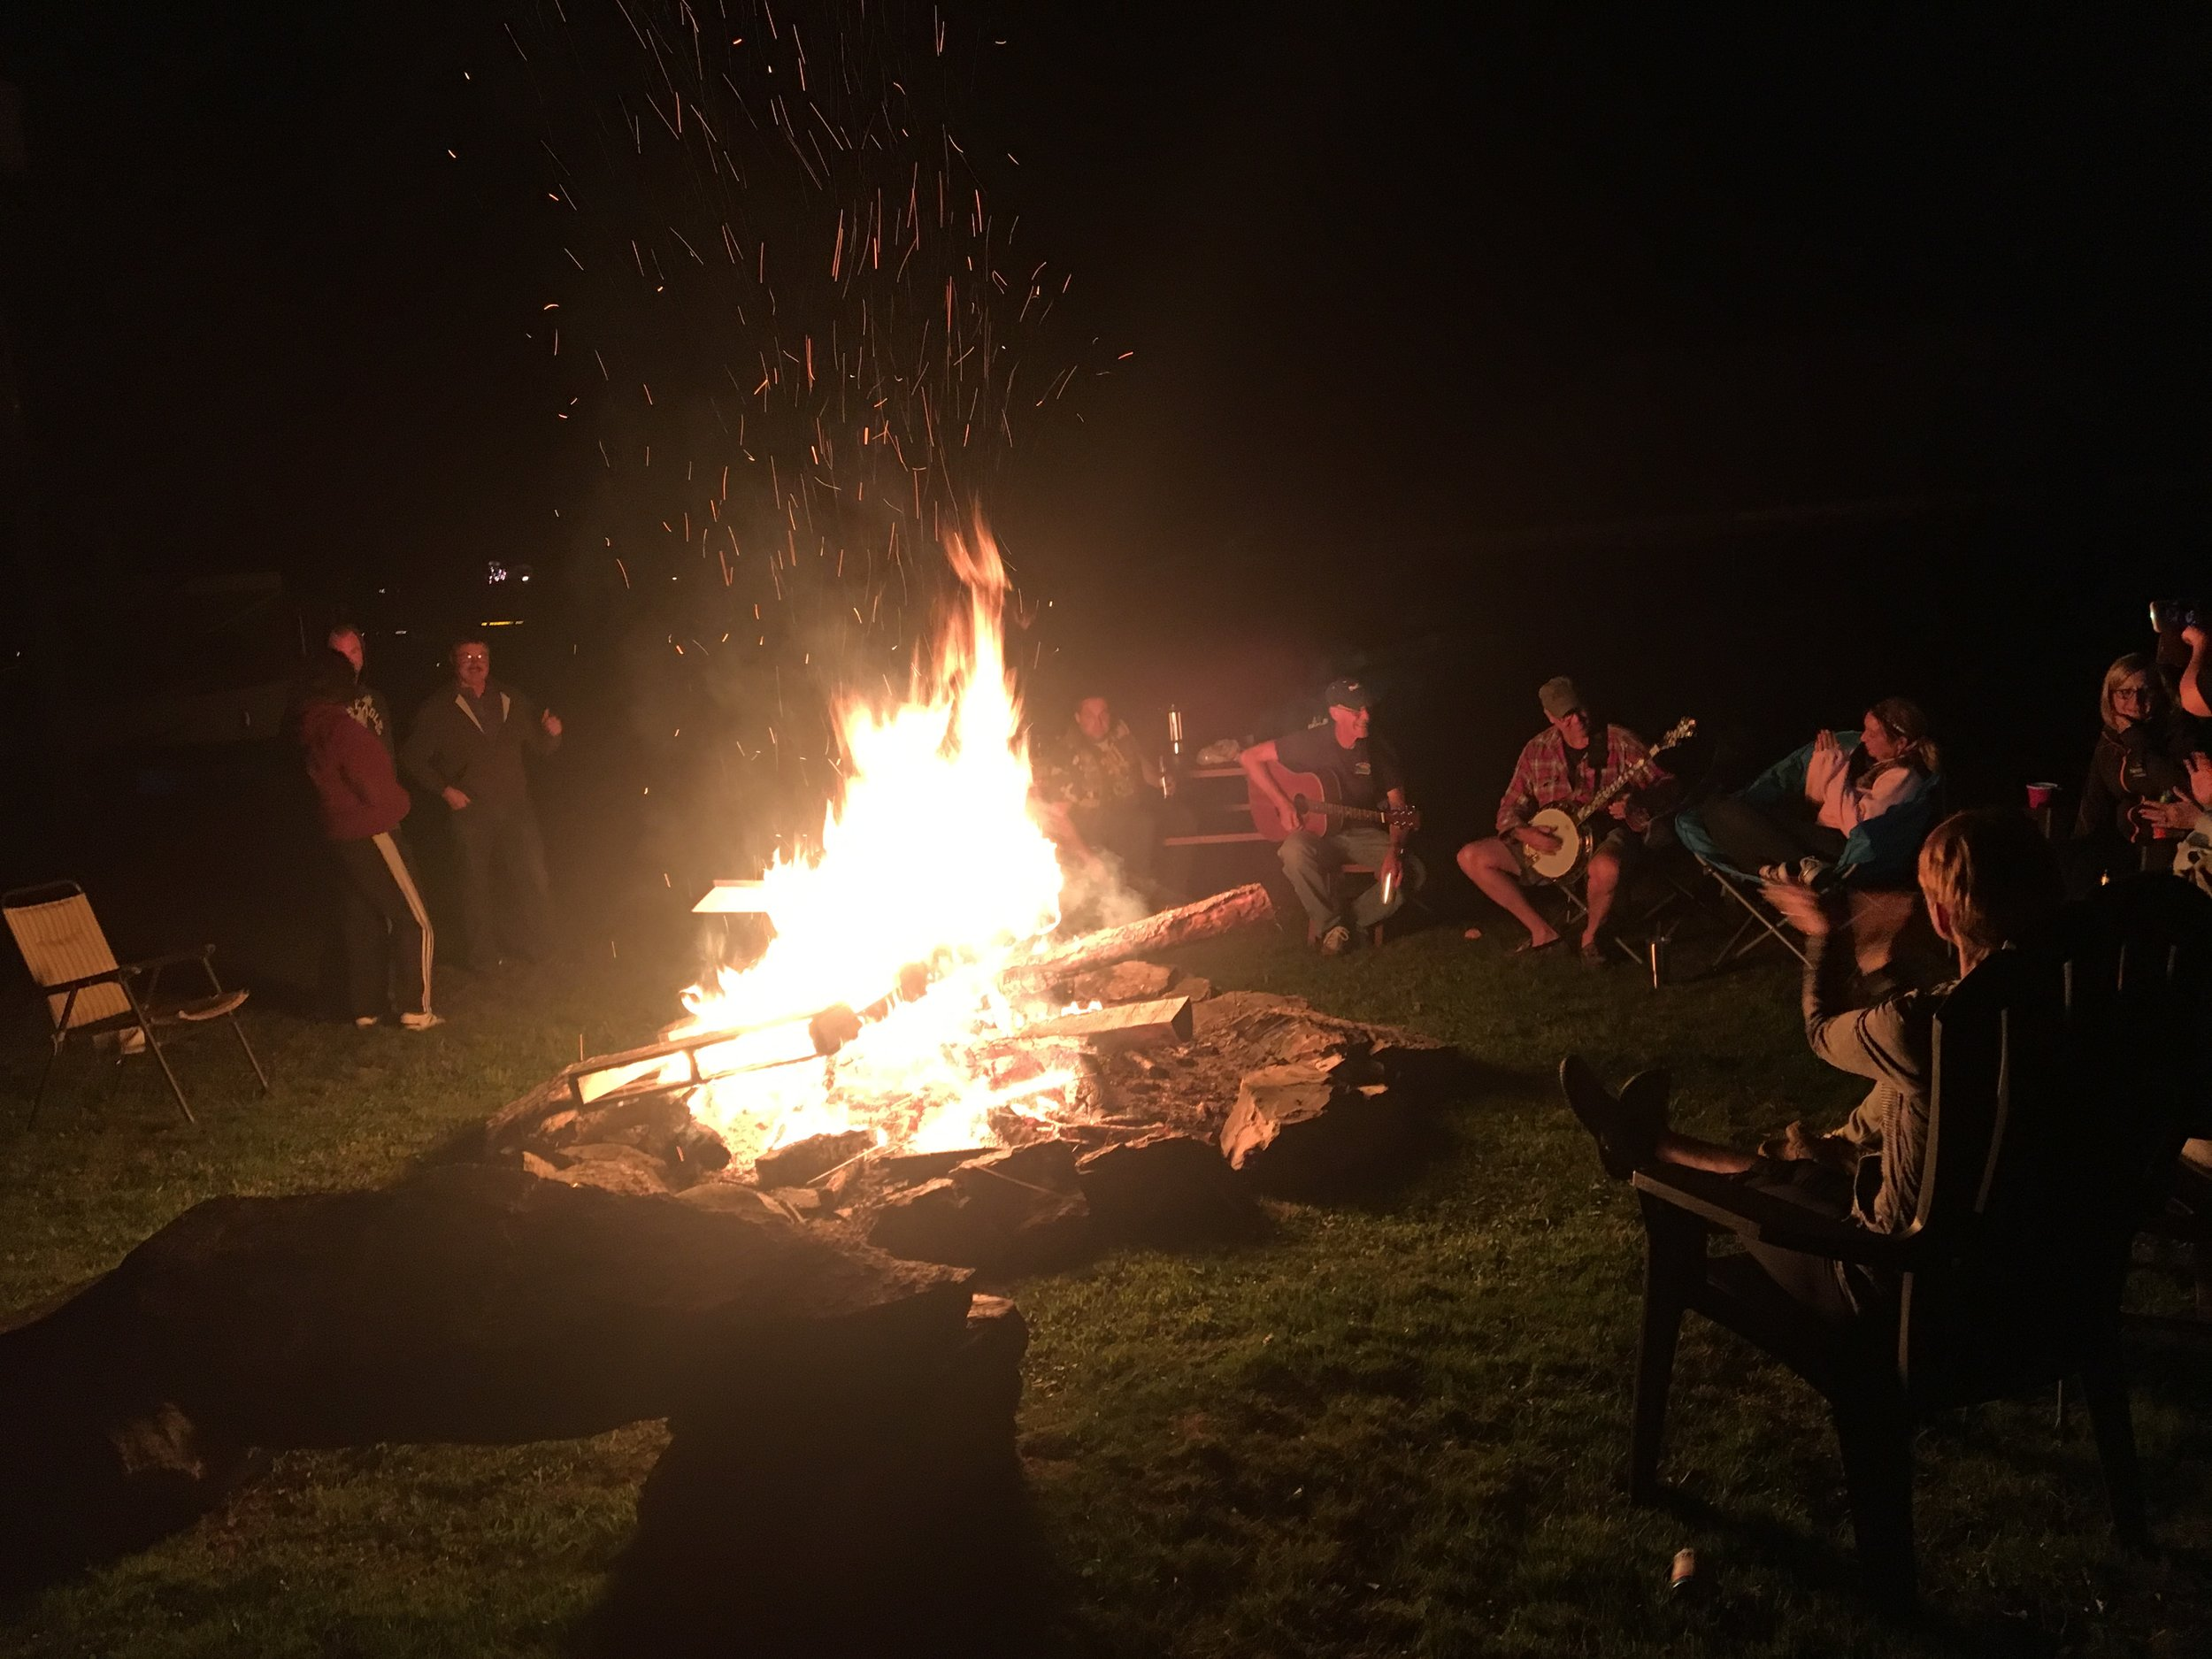 Relaxing! - No heavy partying, no off road vehicles, no golf carts & with strictly enforced quiet hours you'll only hear the sound of a fire crackling and the sounds of nature so you can experience camping the way it should be.